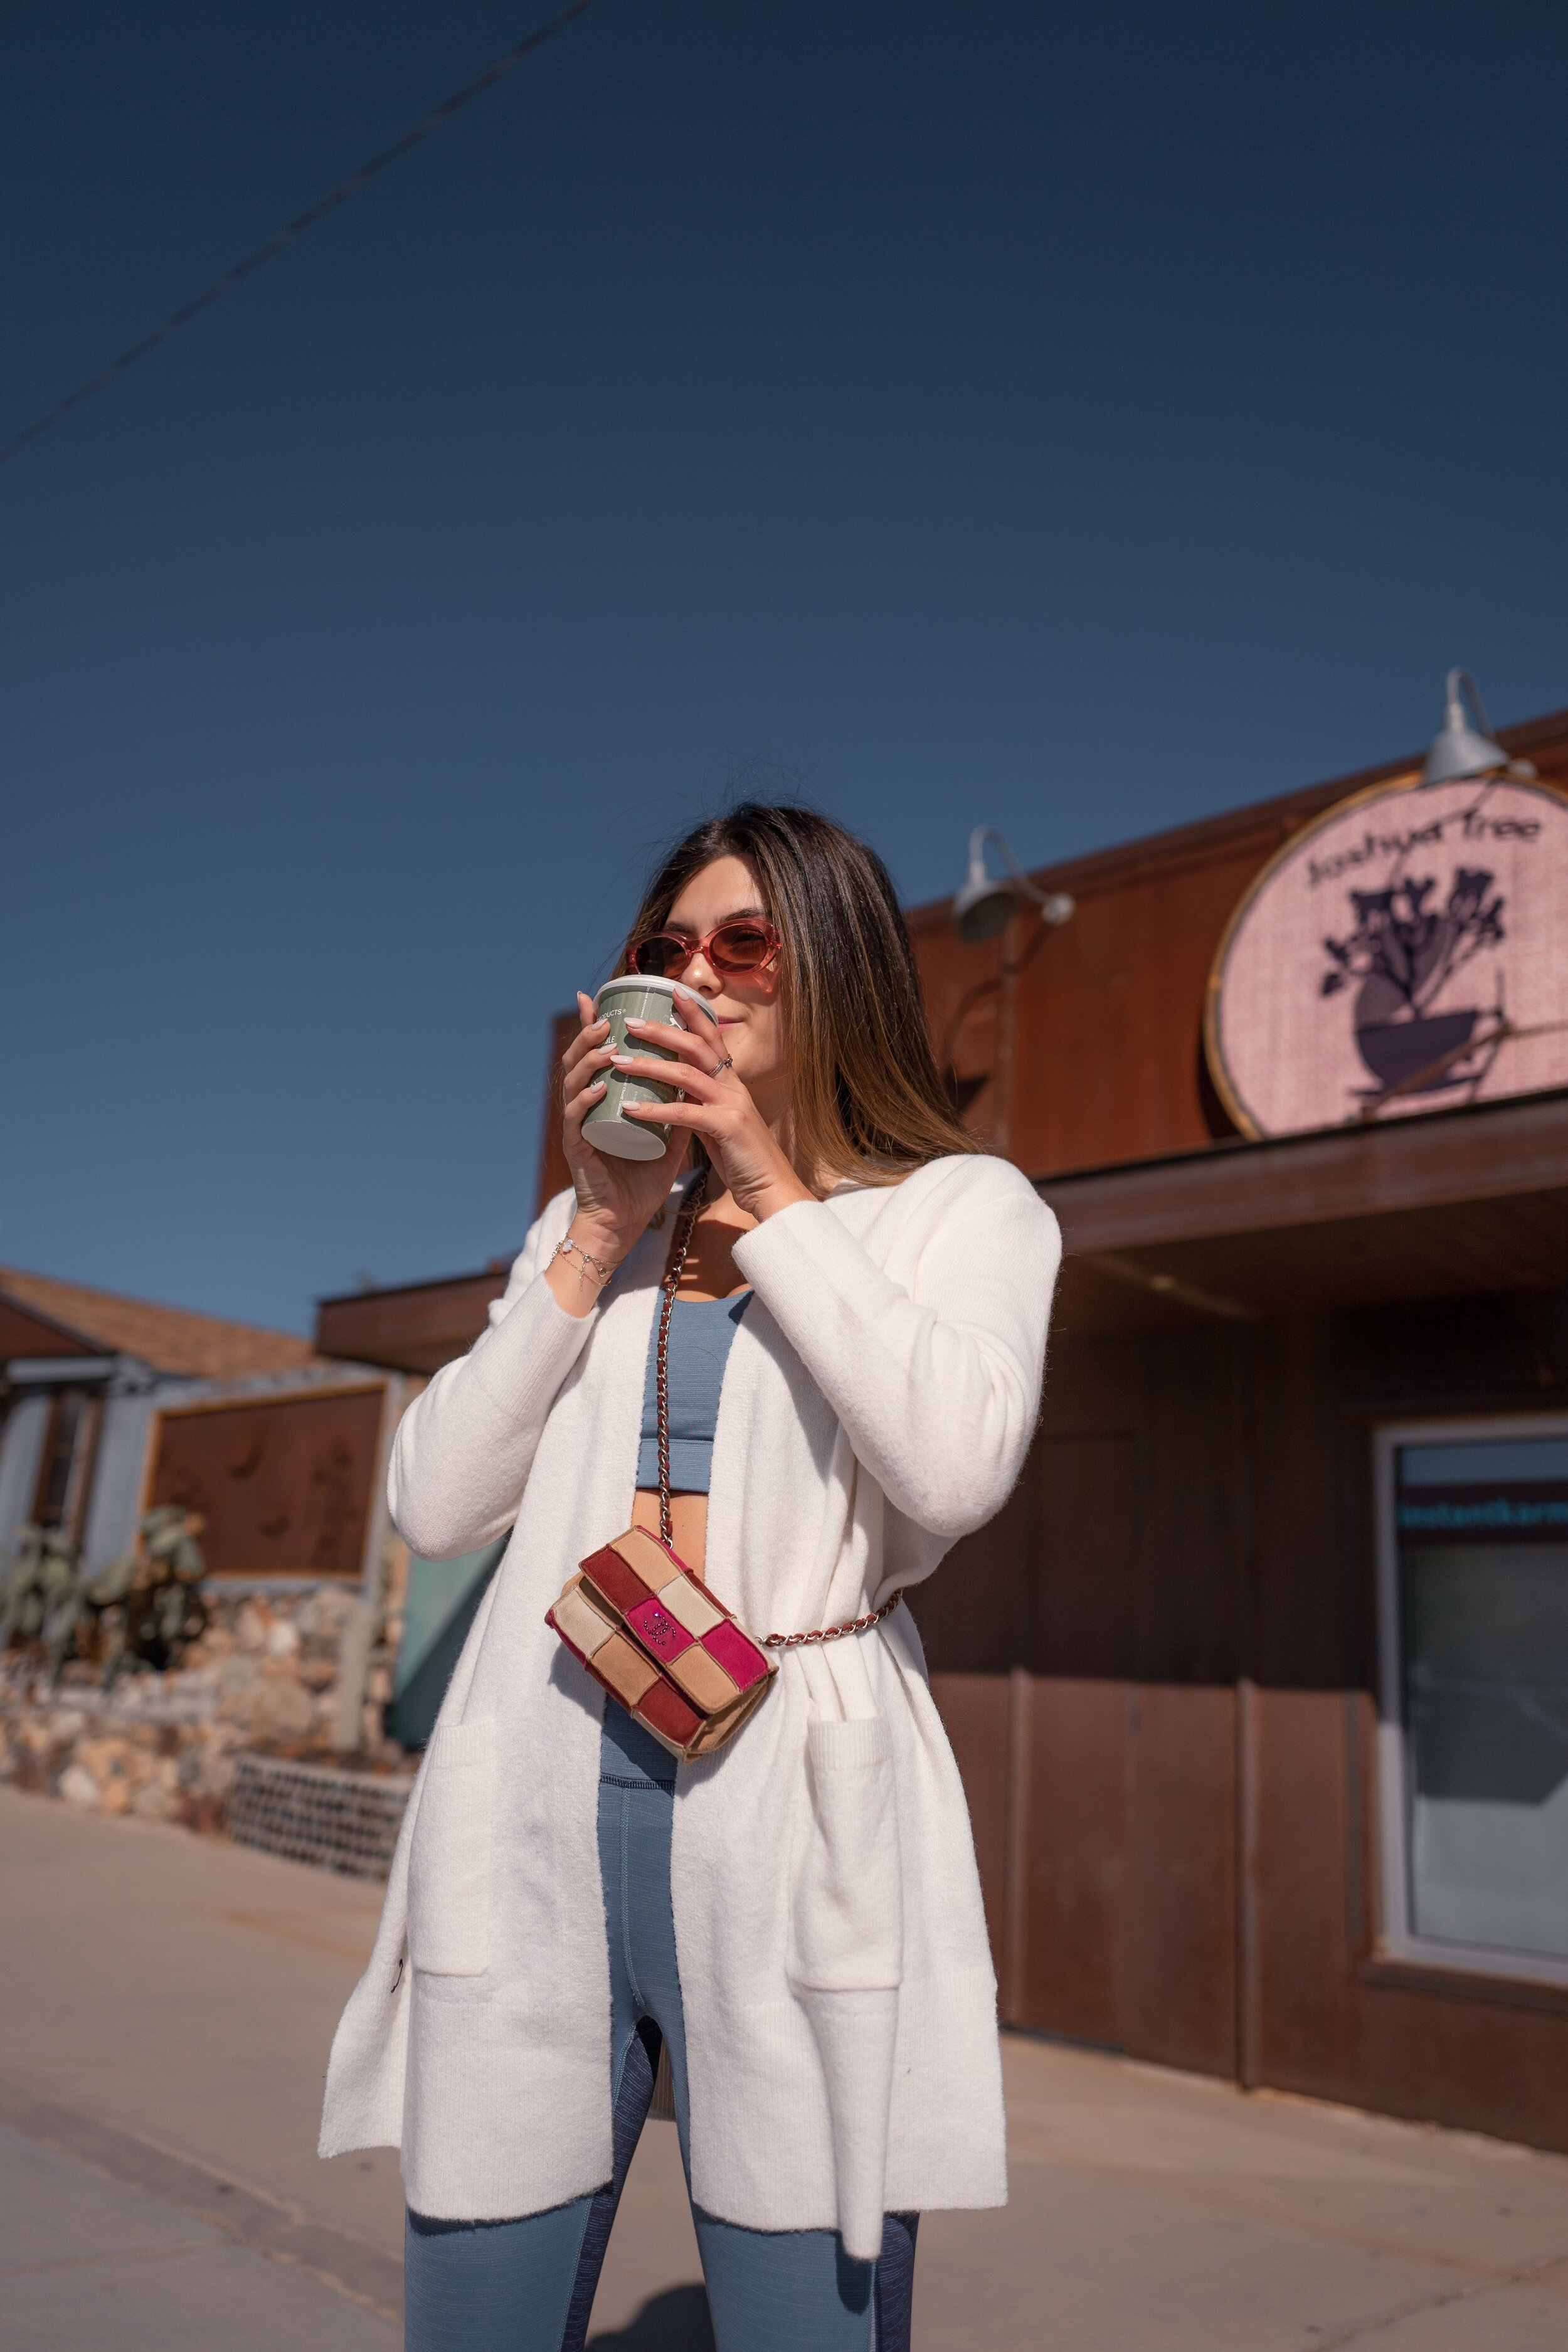 Joshua tree coffee company Julia friedman Joshua tree travel guide